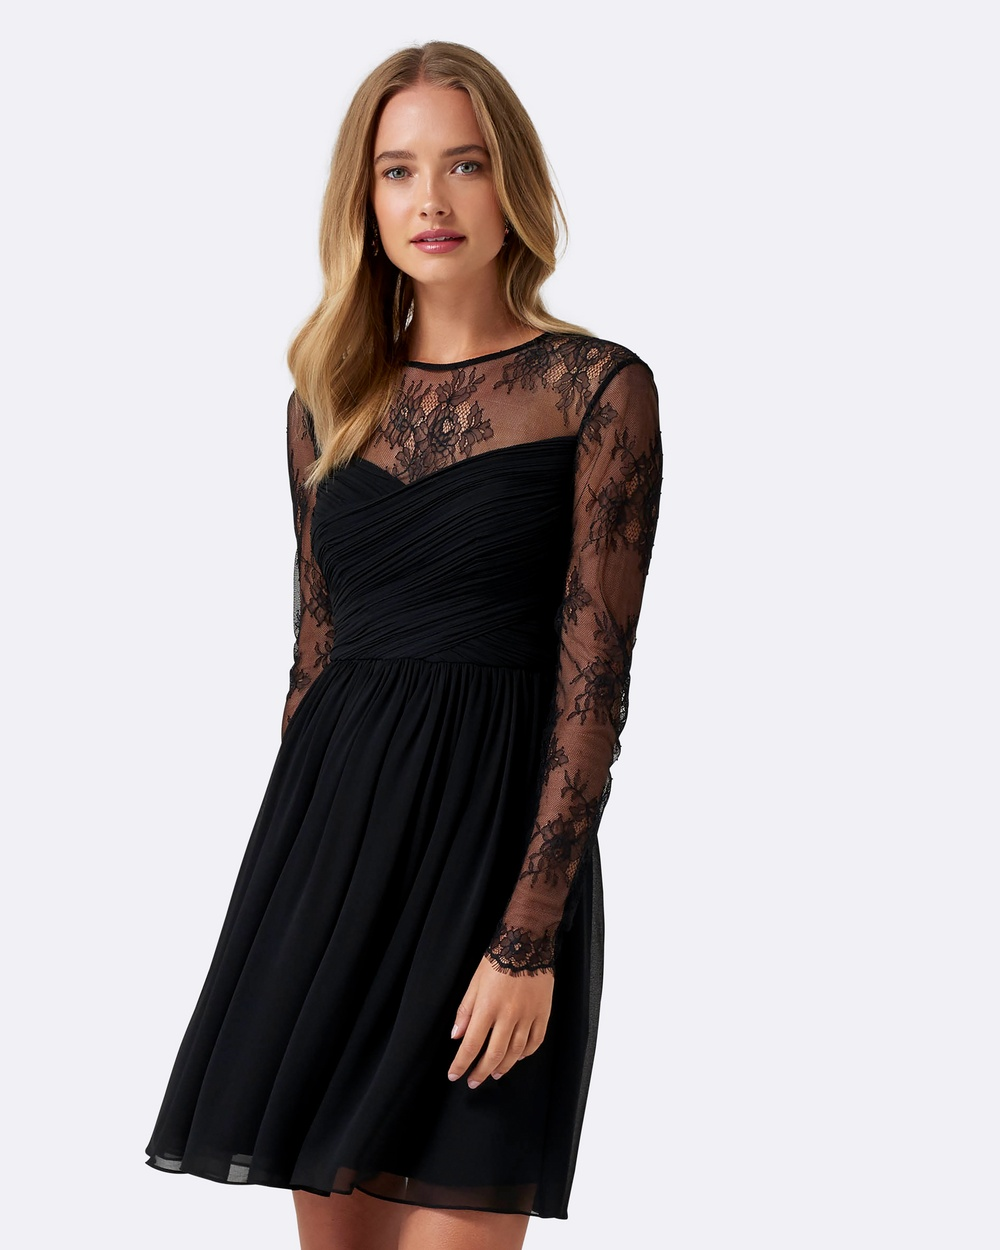 Forever New Lilly Lace Soft Prom Dress Bridesmaid Dresses Black Lilly Lace Soft Prom Dress